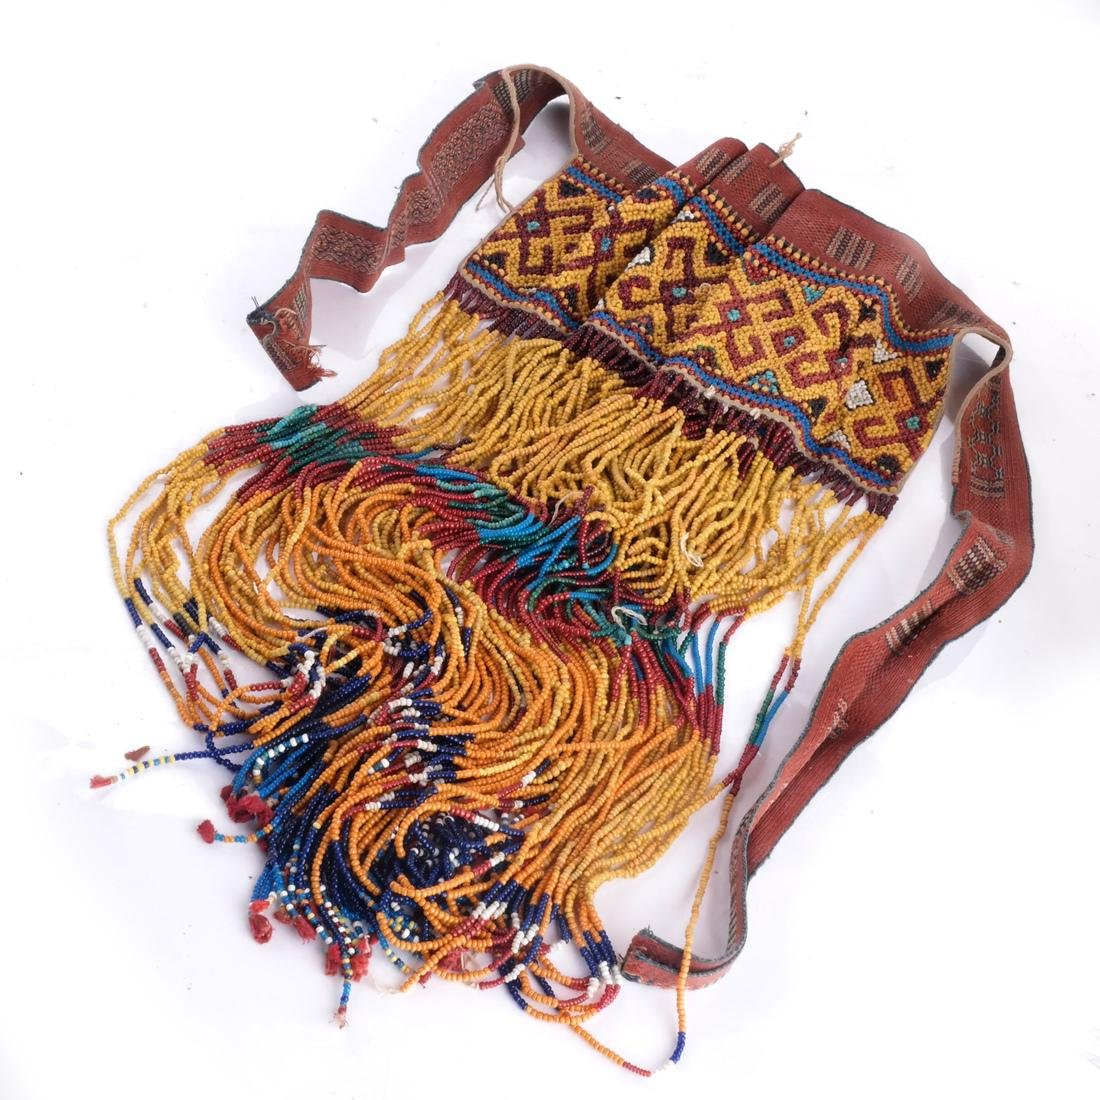 Indo-Asian, Tribal Clothing & Accessories - 2